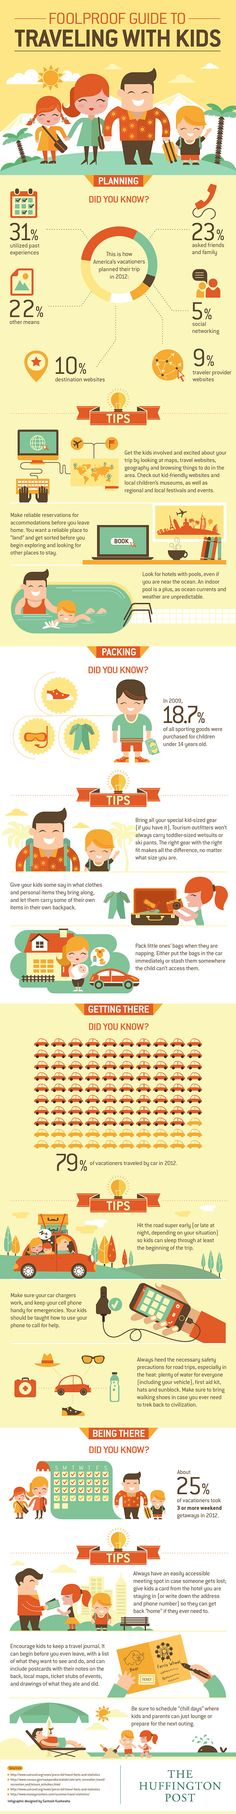 The Foolproof Guide To Traveling With Kids   #infographic #Travel #Kids